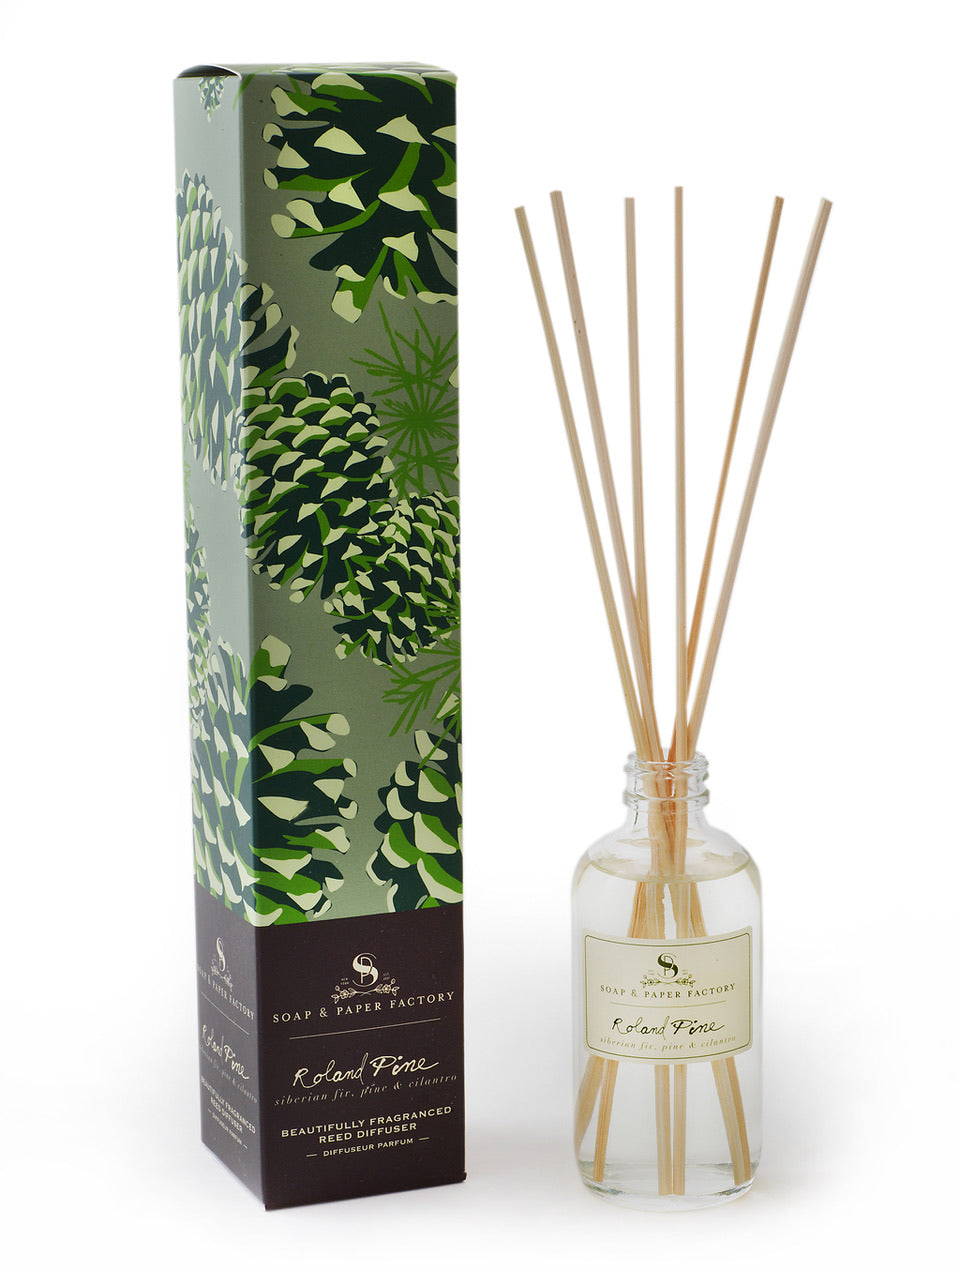 Roland Pine Diffuser by the Soap and Paper Company New York